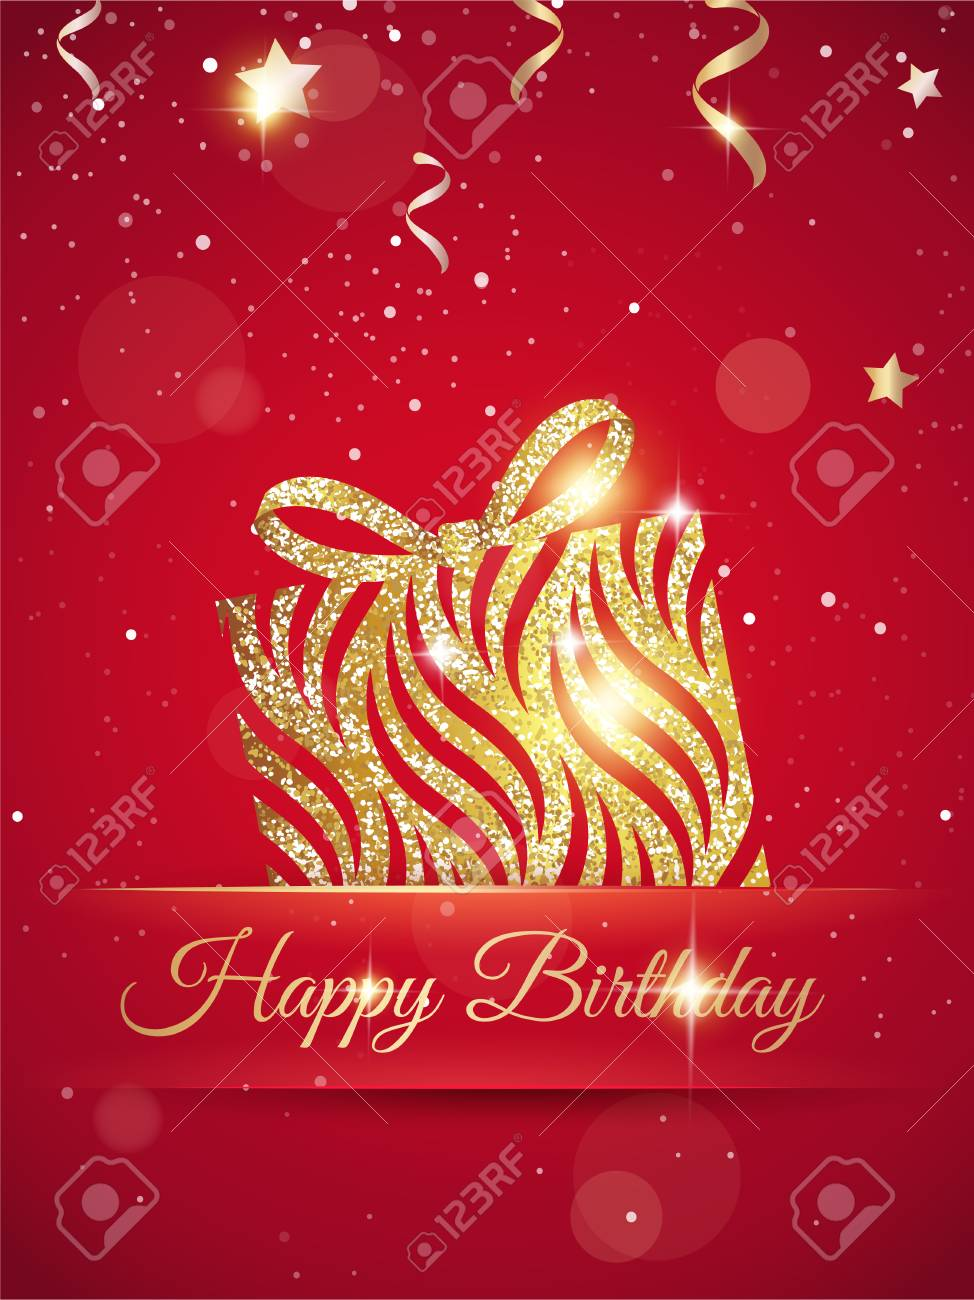 Happy birthday elegant red card with gift, confetti and gold..